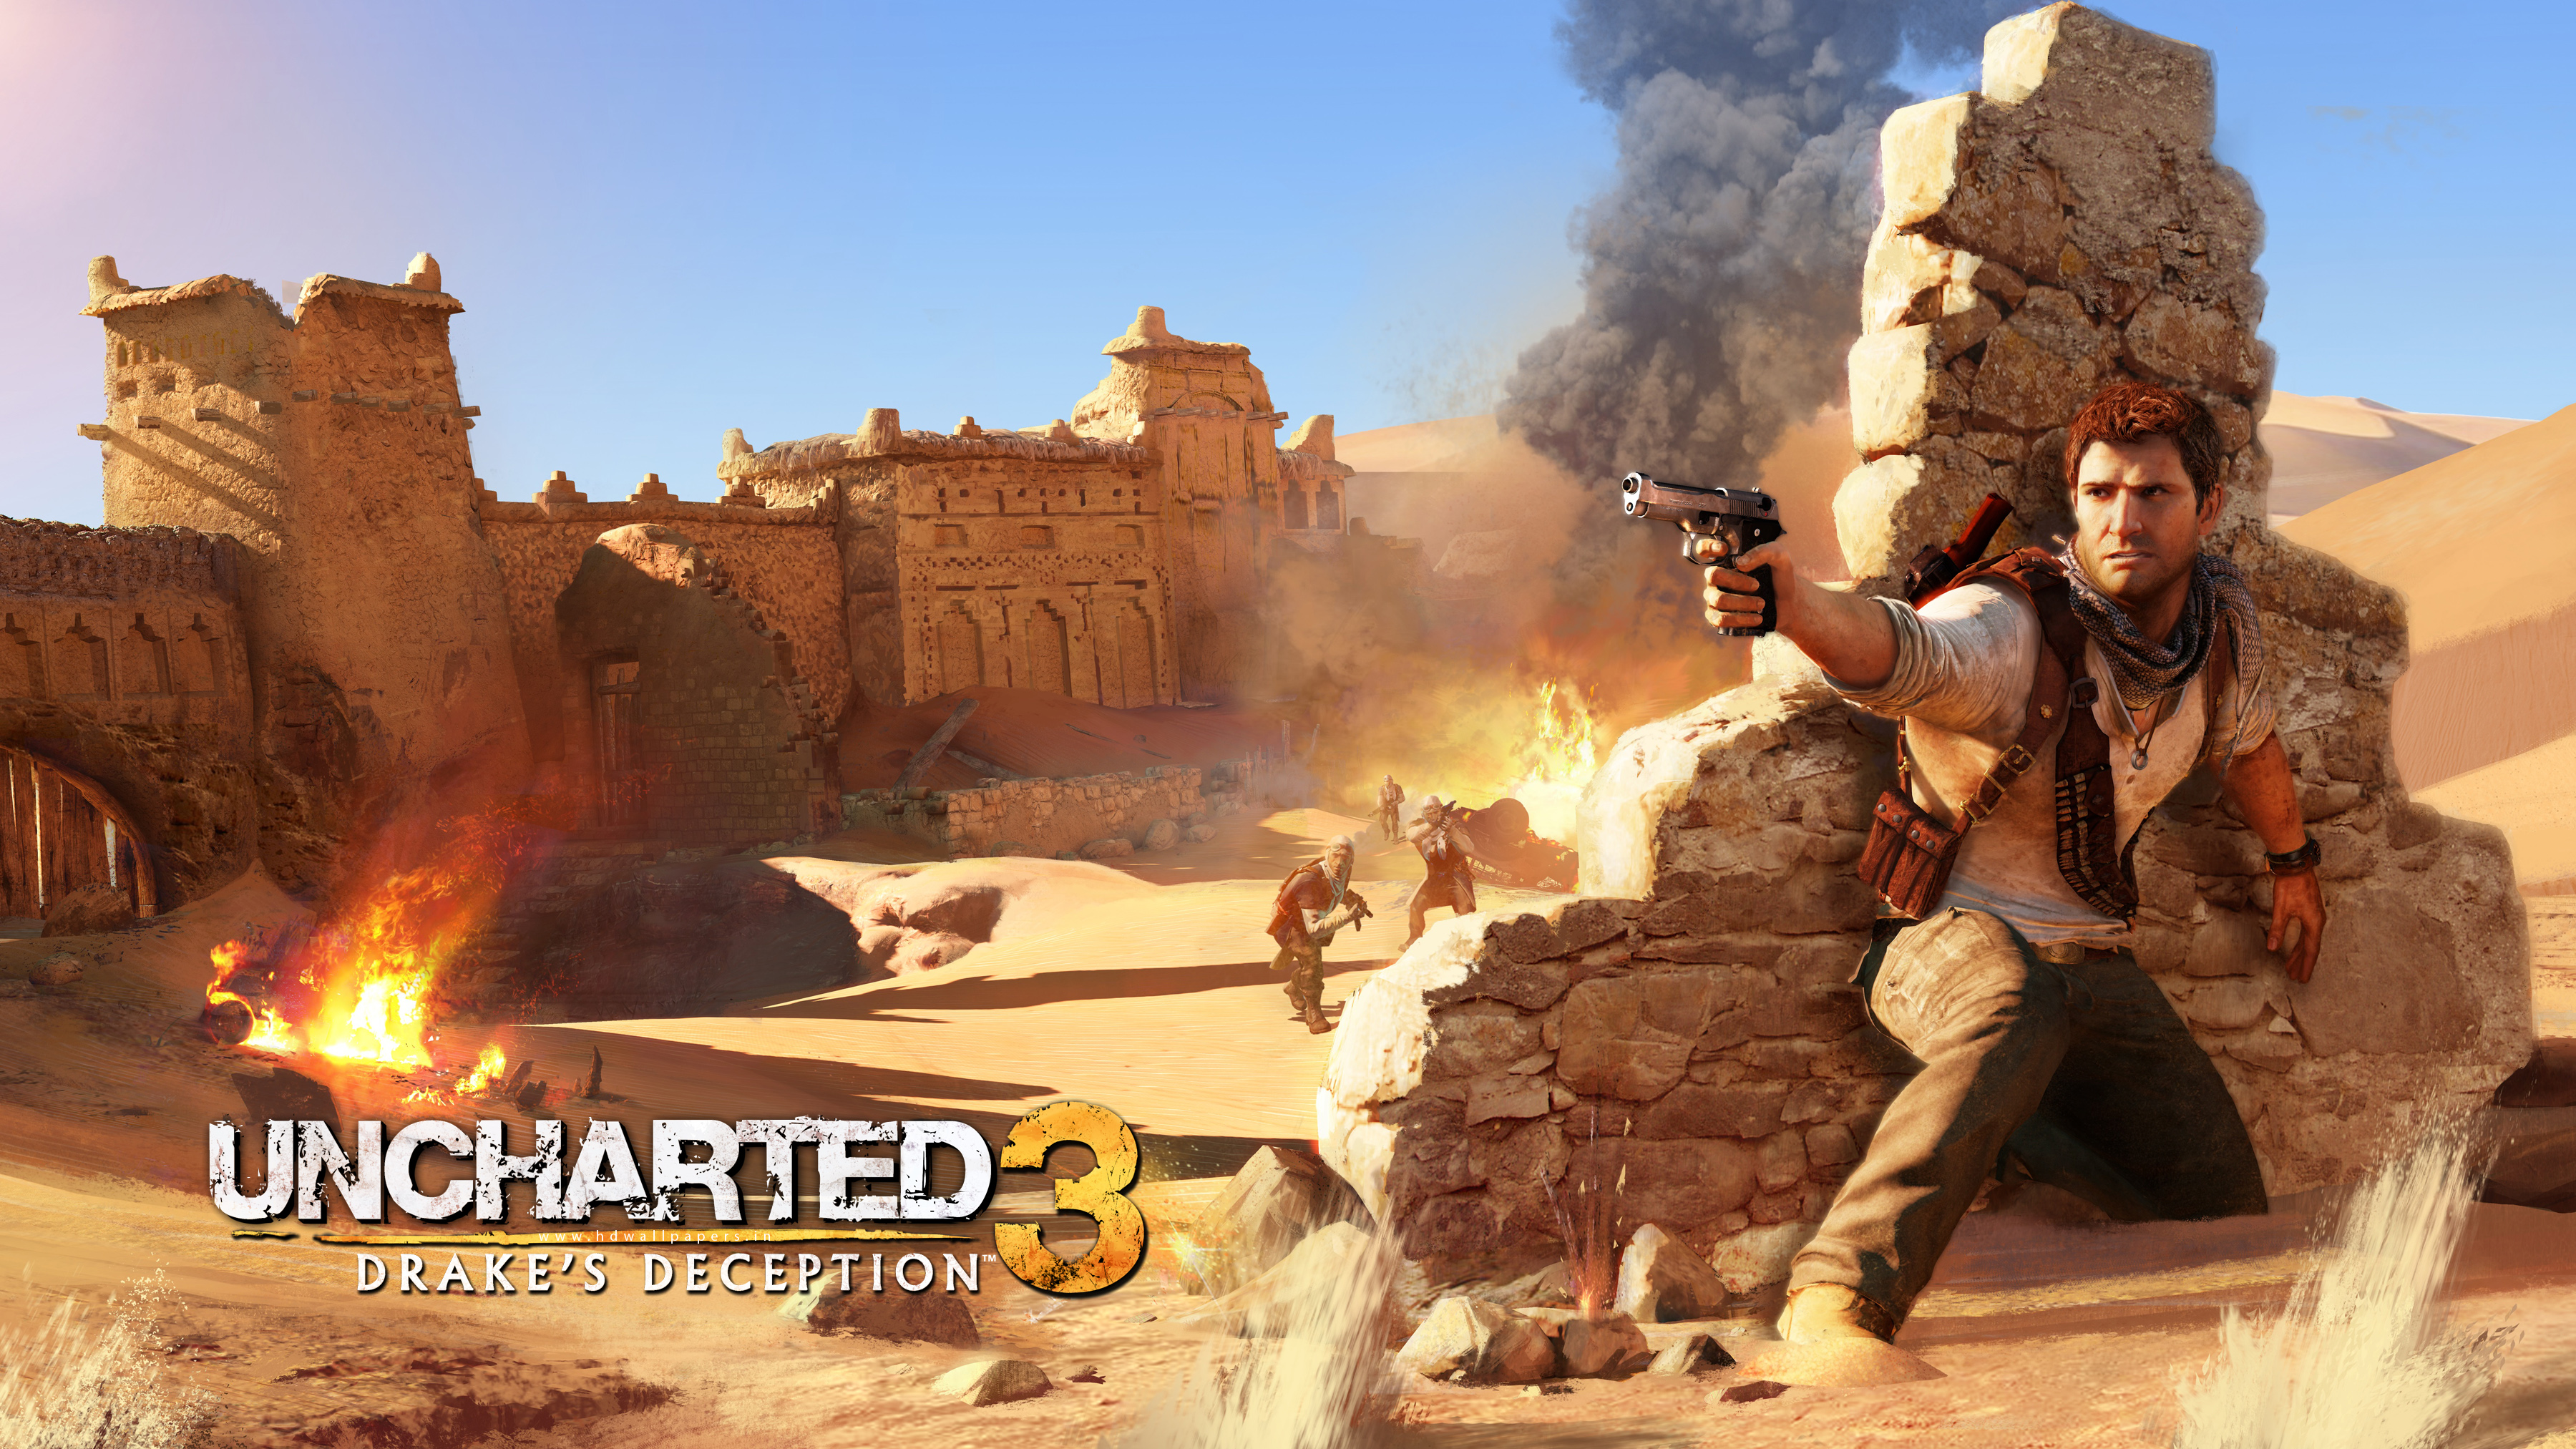 Drake in Uncharted 3